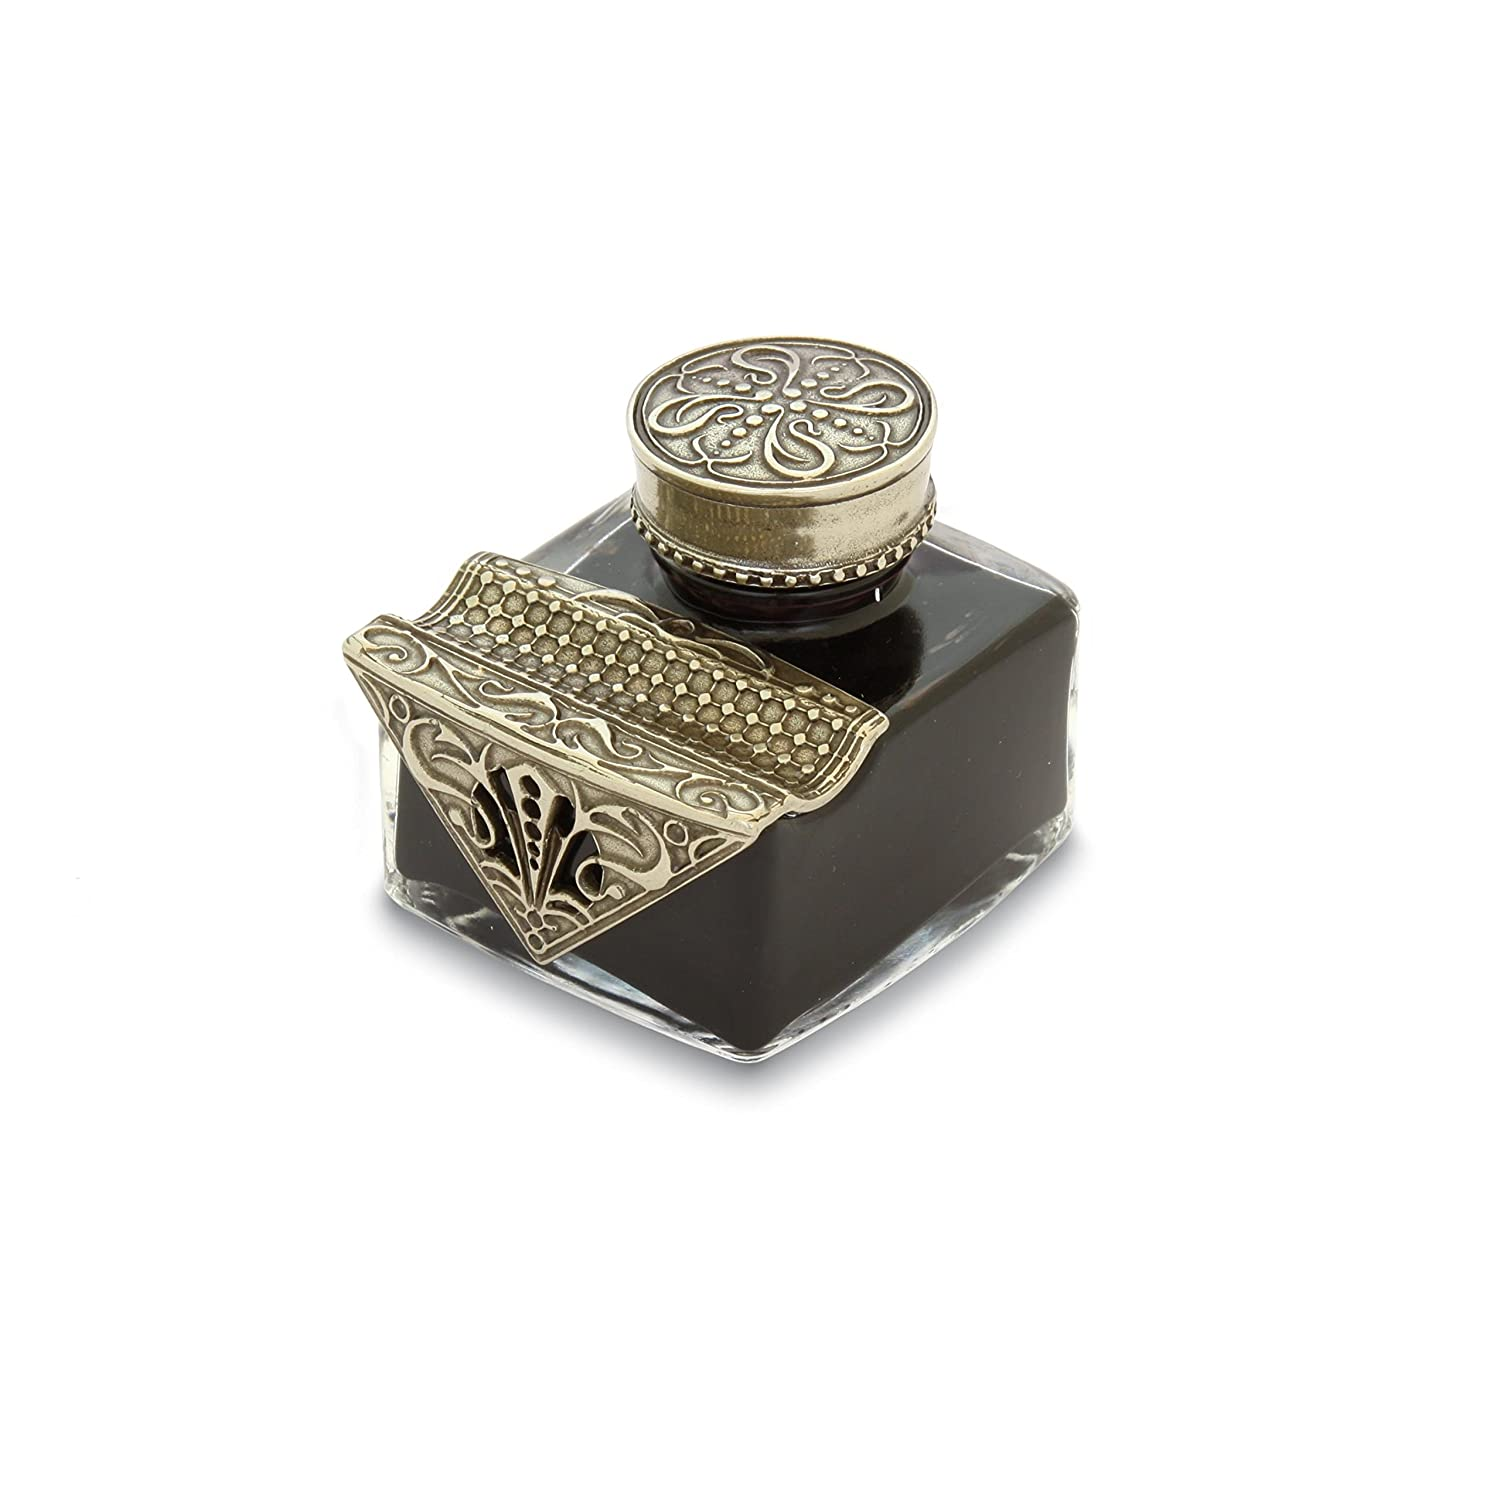 BORTOLETTI Glass Inkwell With Chiselled Bronze Friezes And Exempla Line Pen Pencil